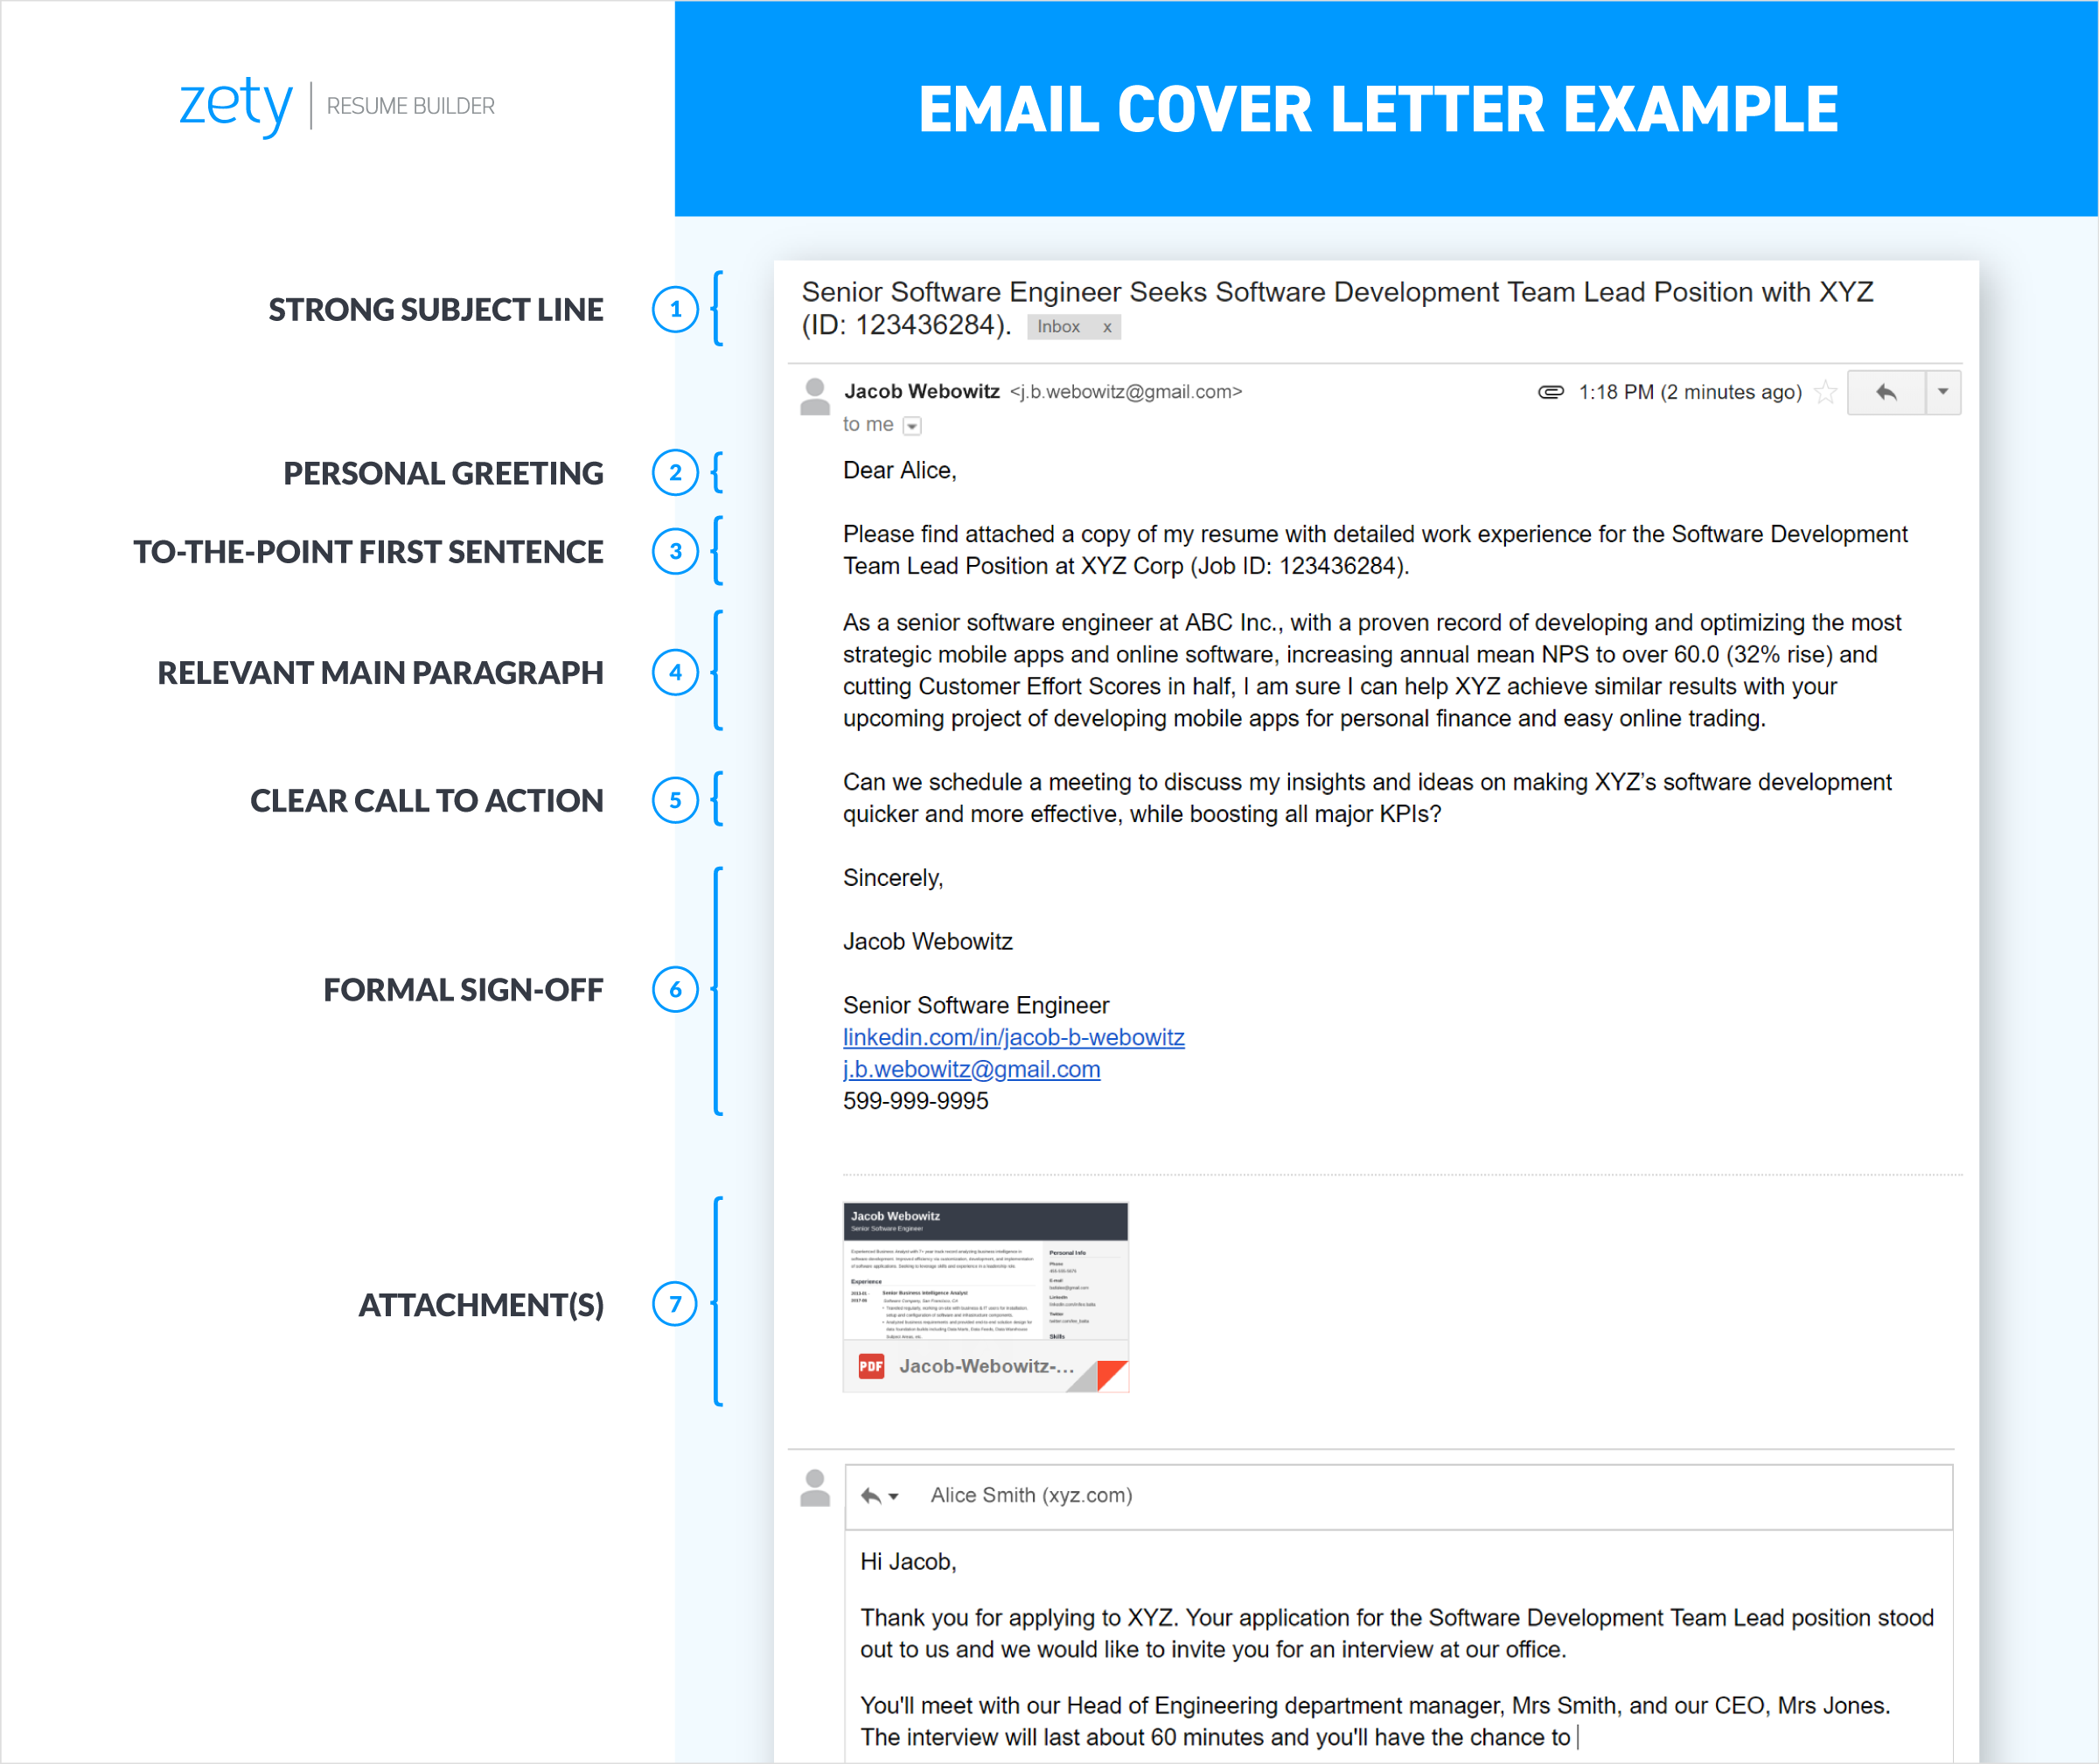 Email Cover Letter Sample Format From Subject Line To Attachment